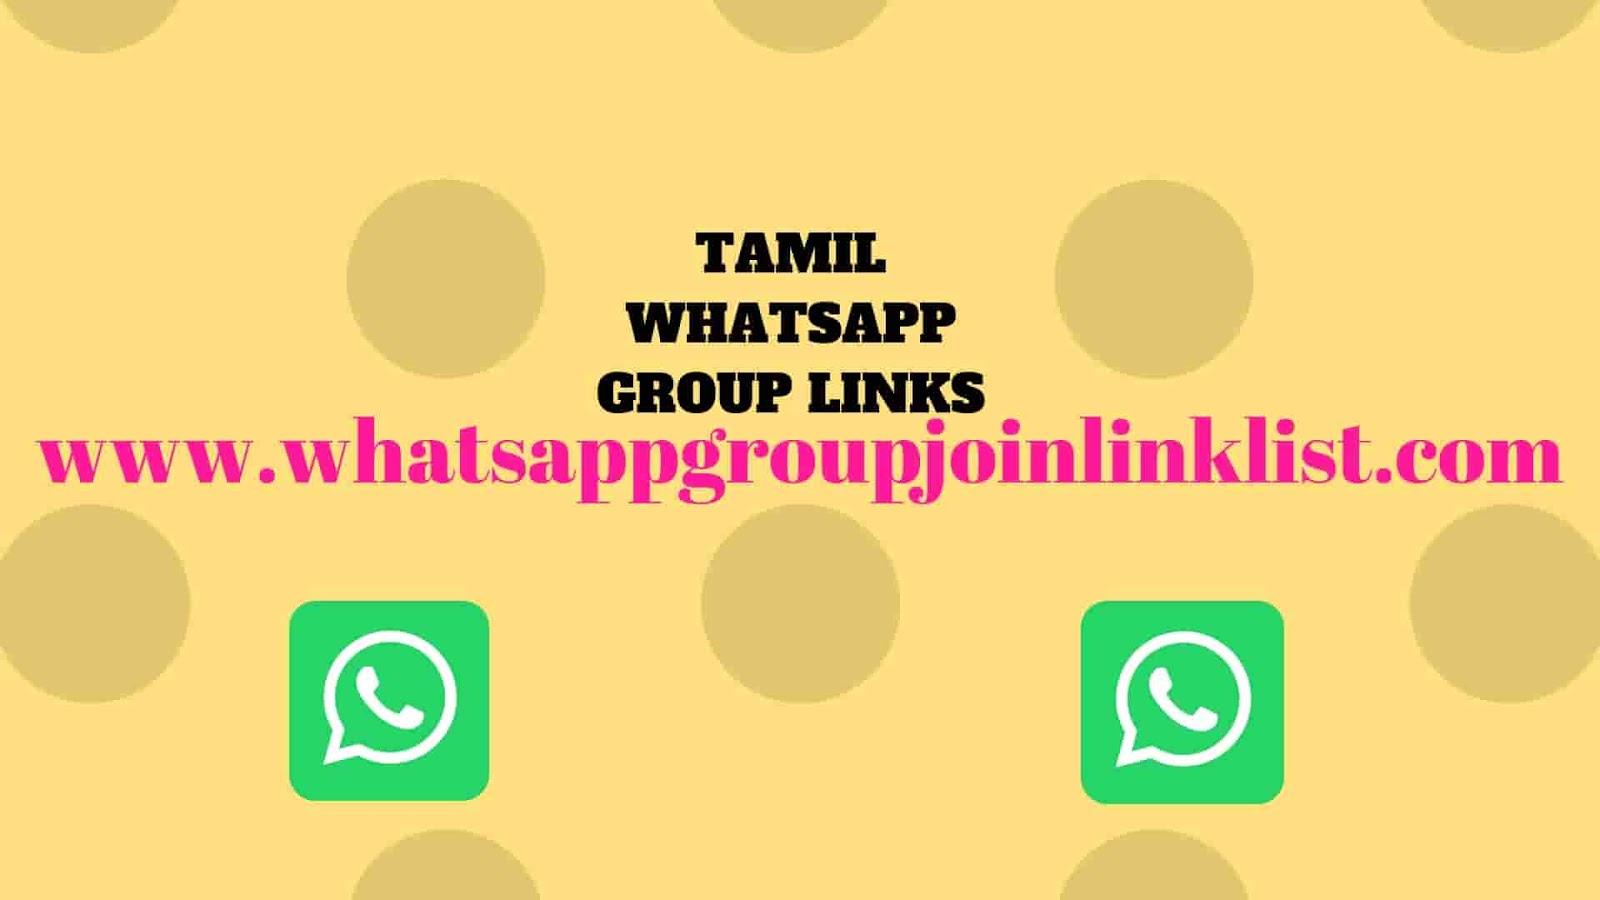 Mom whatsapp groups link